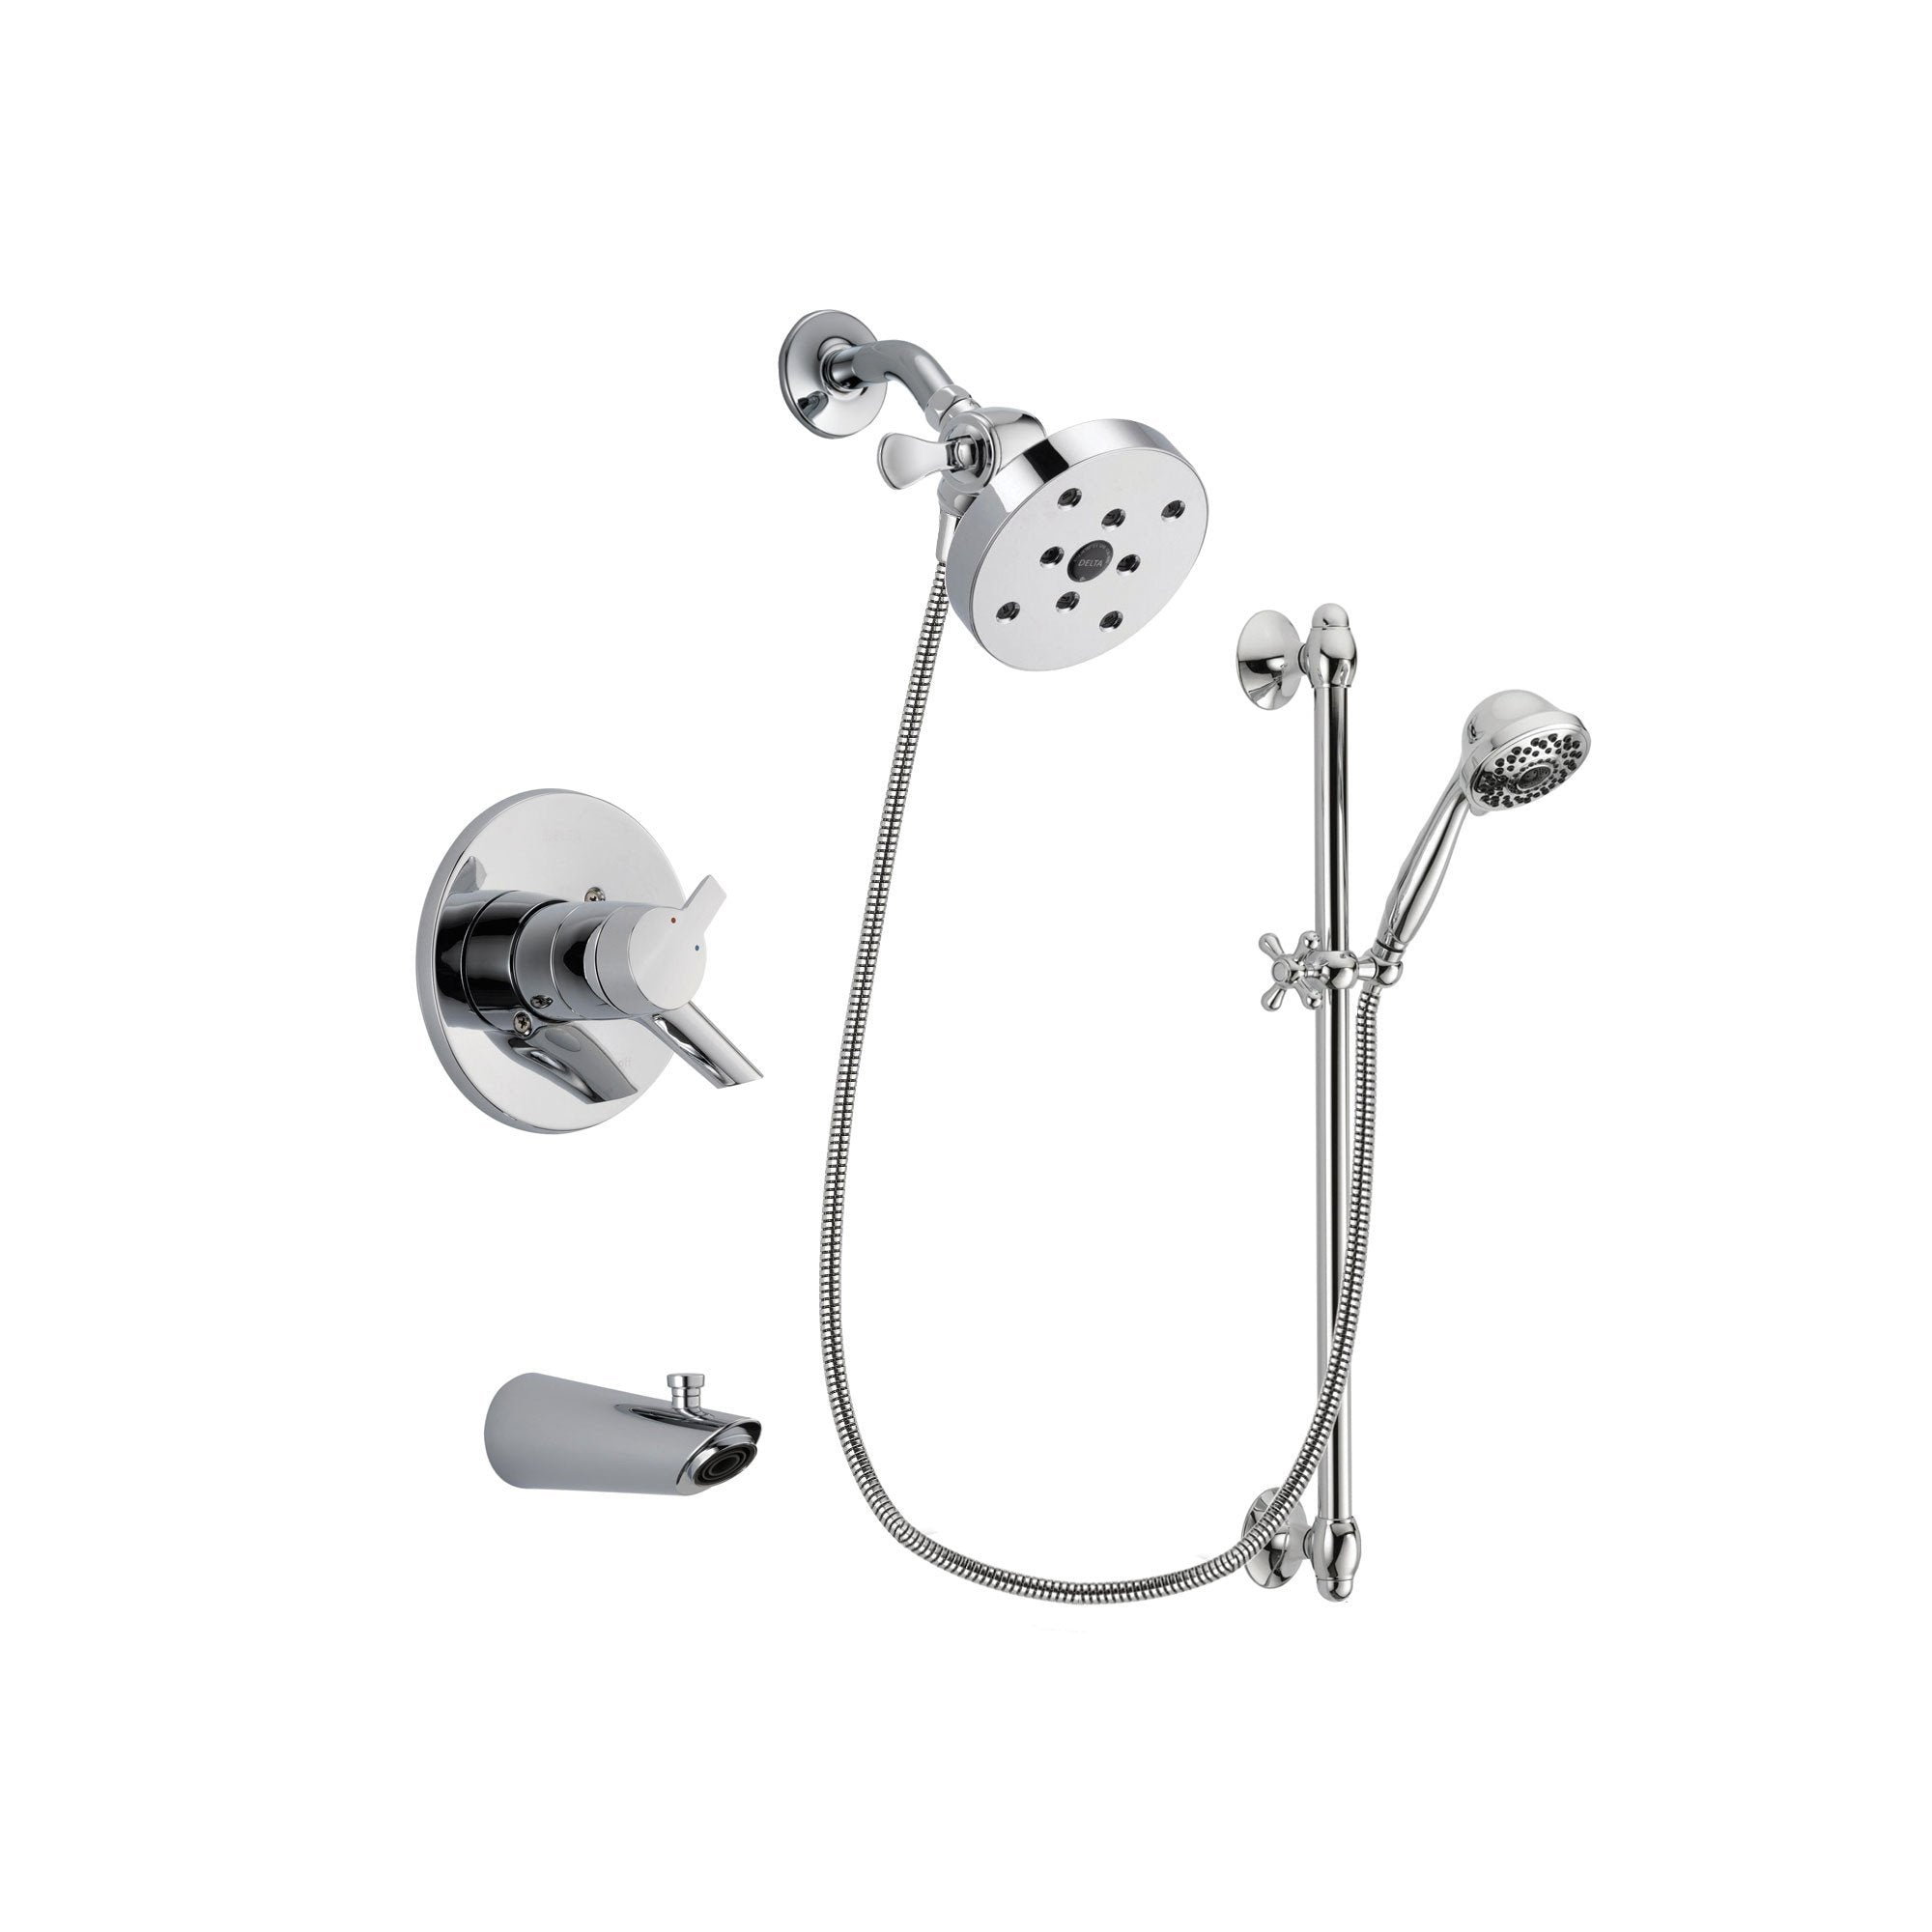 Delta Compel Chrome Tub and Shower Faucet System with Hand Shower DSP0687V